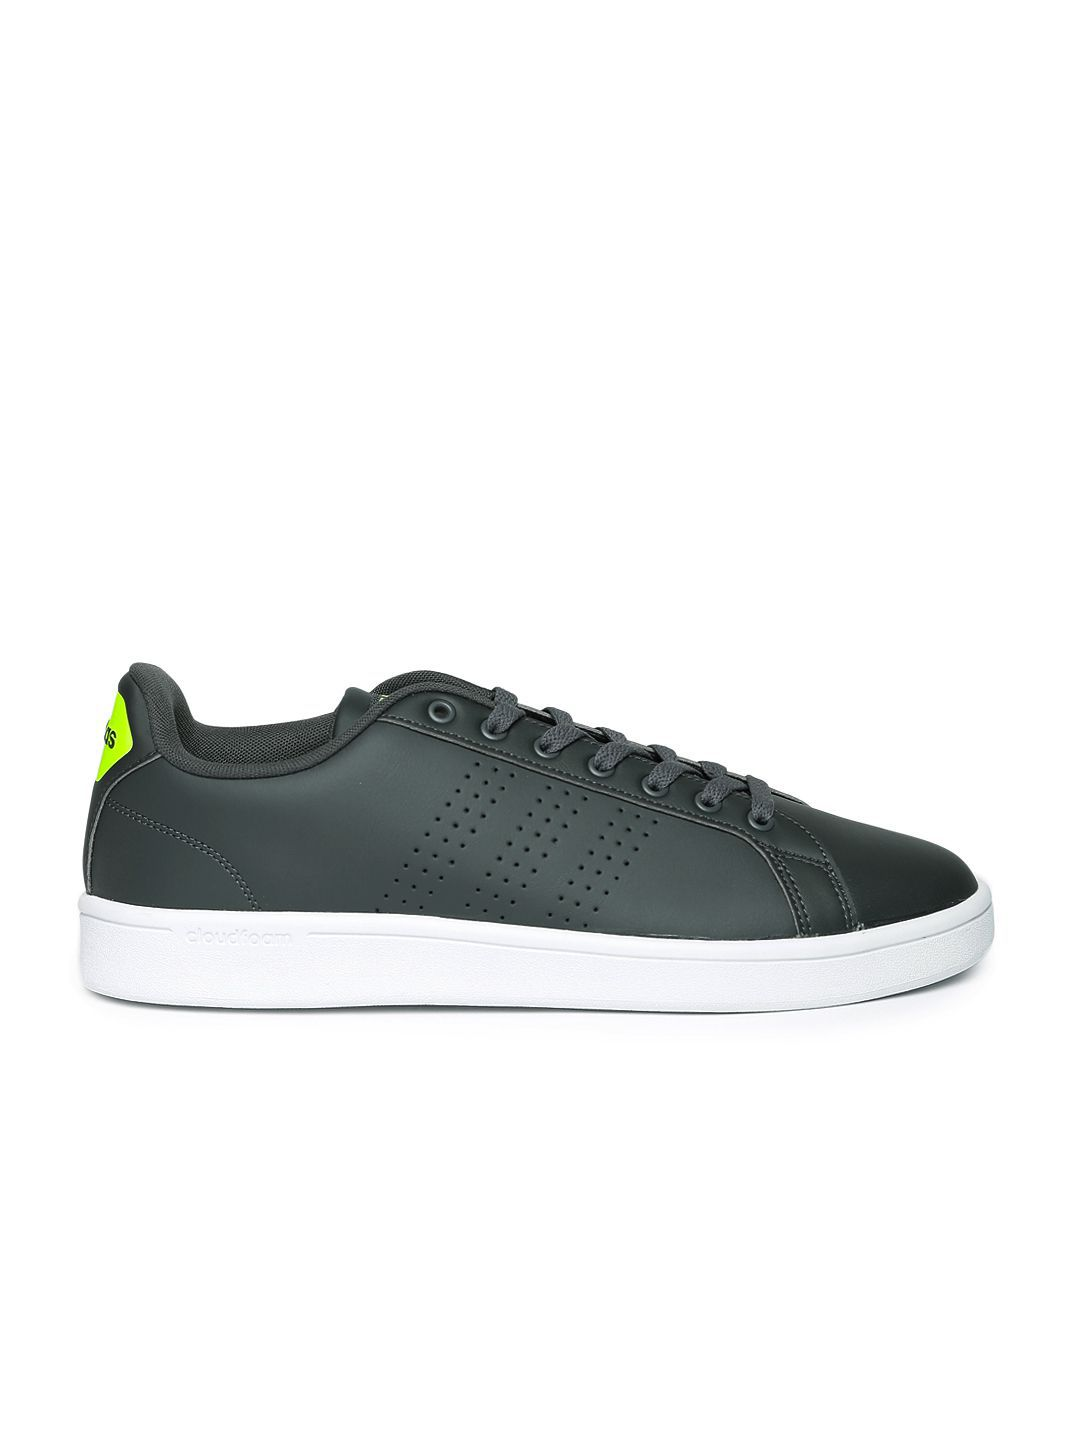 4a16b163c35 ... Adidas NEO Cloudfoam Advantage Clean Sneakers Gray Casual Shoes ...